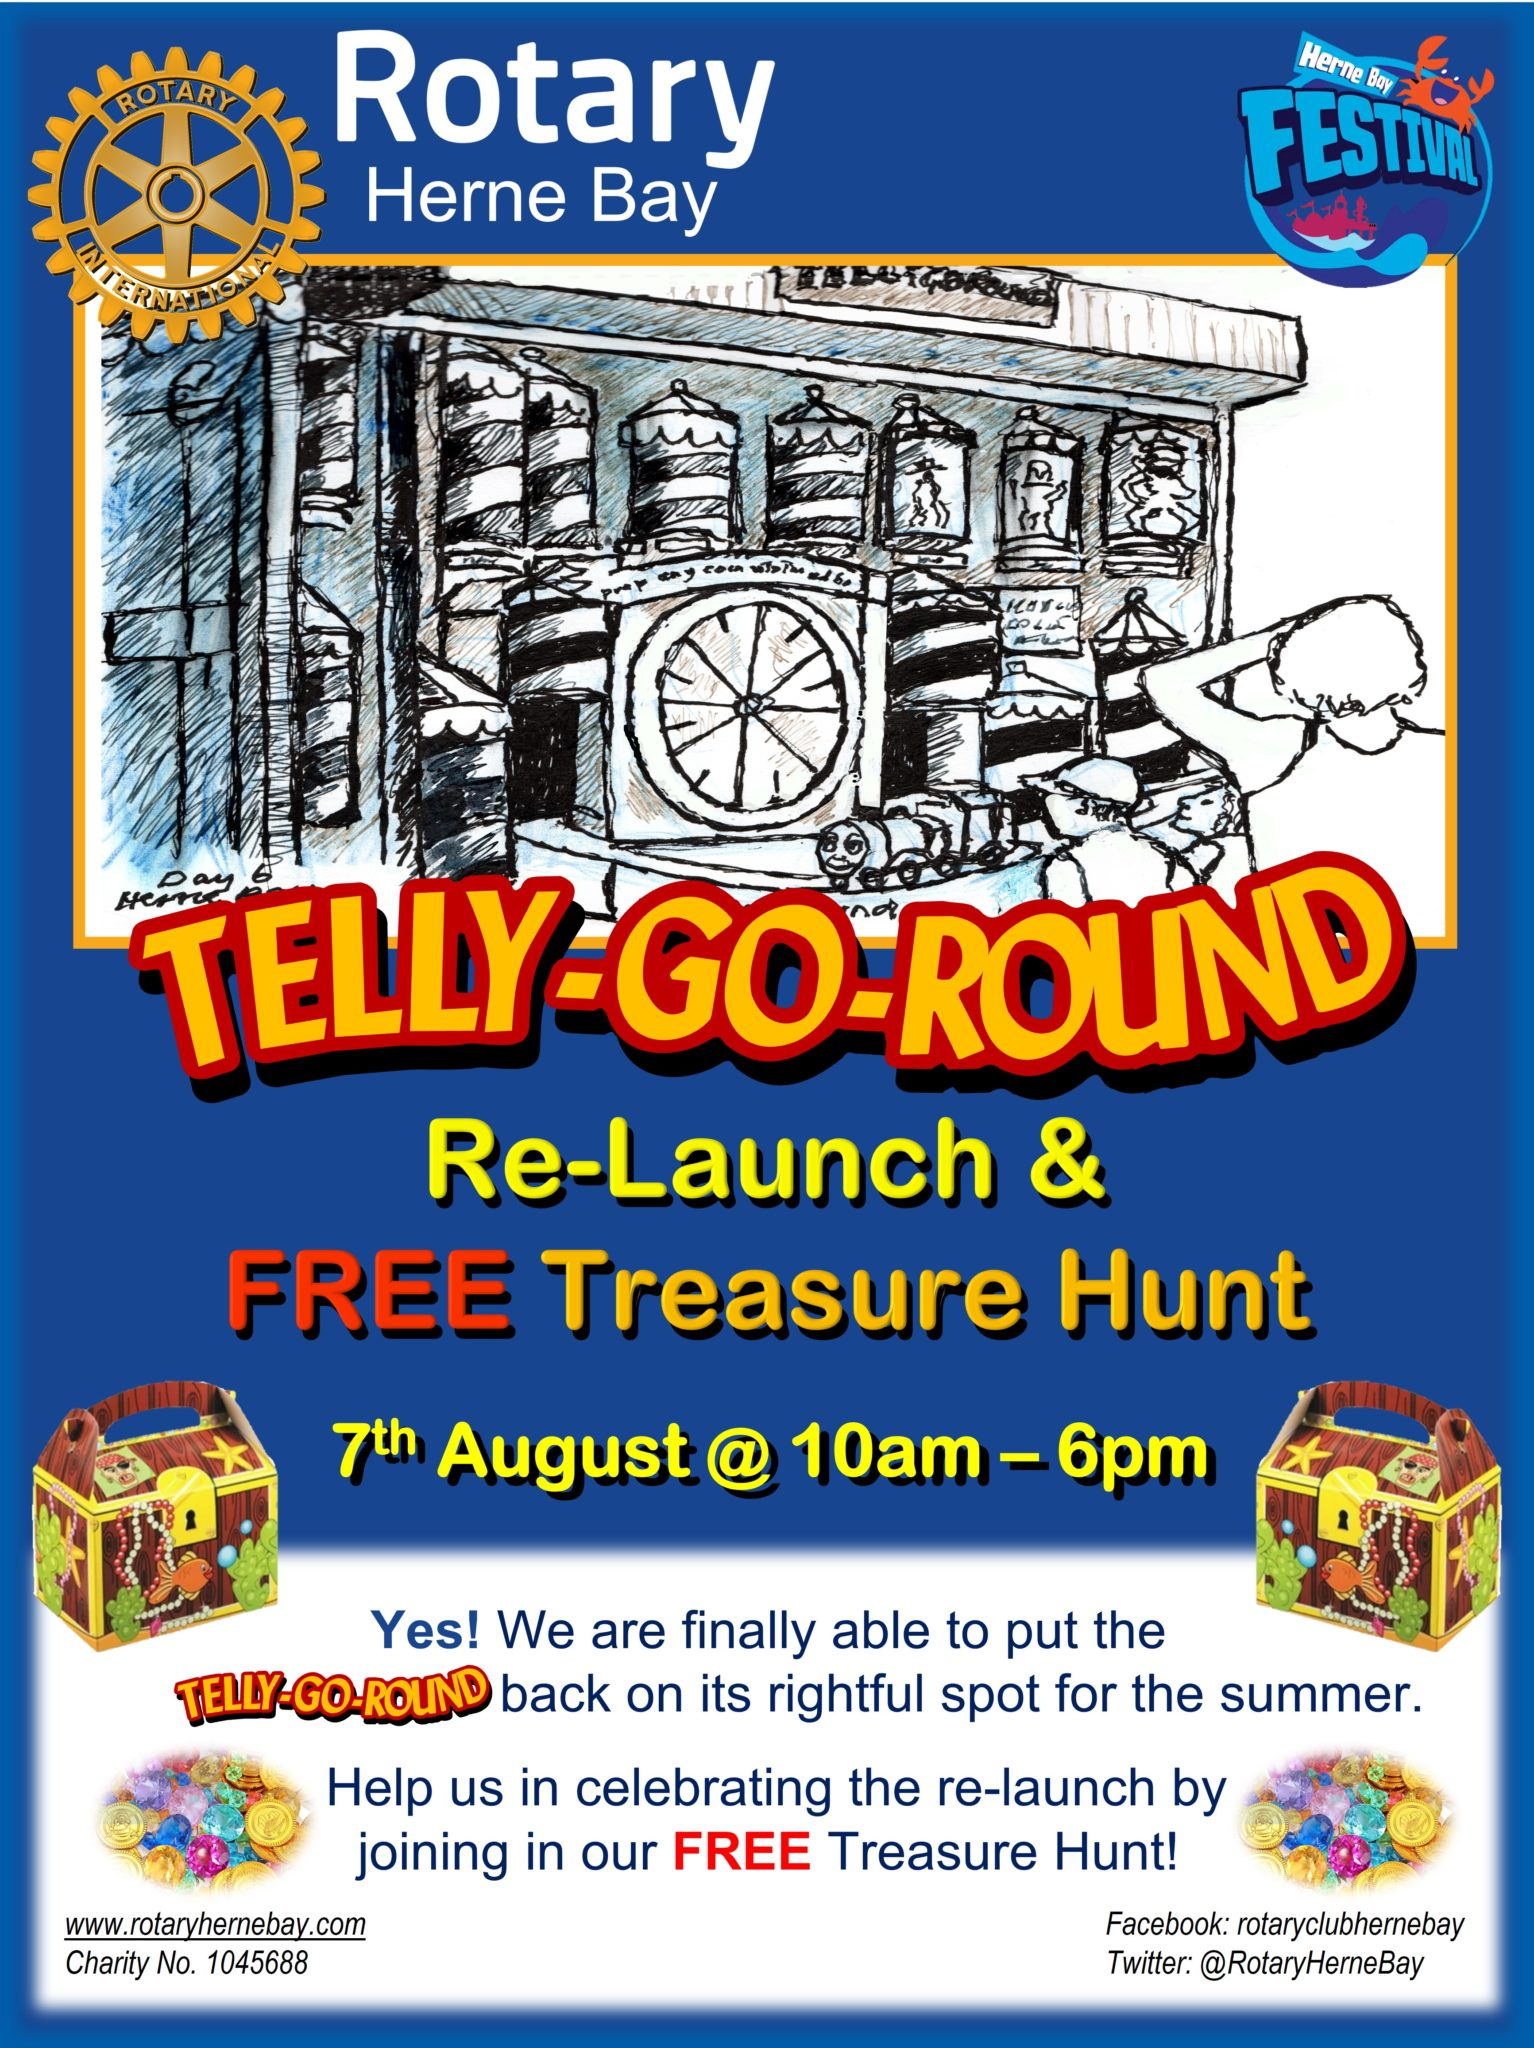 Telly-Go-Round is Back